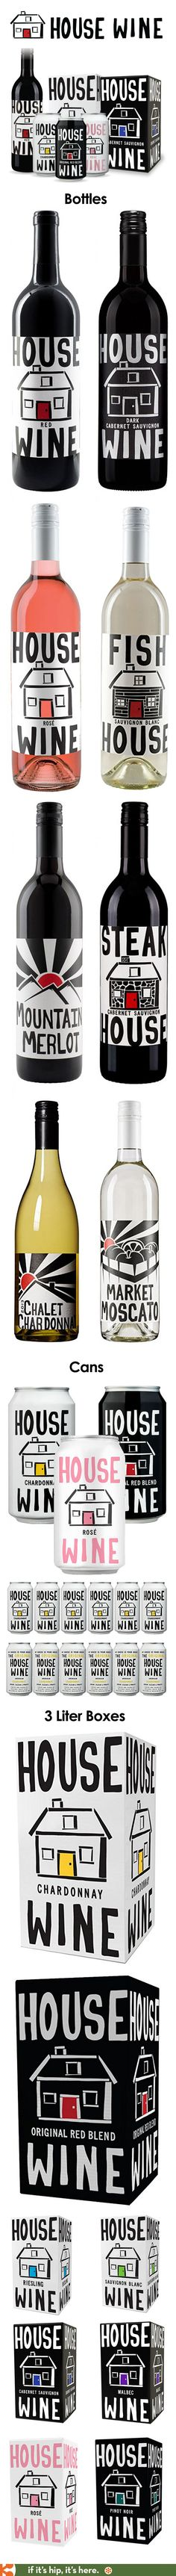 The highly regarded wines in bottles, cans and boxes from the Original House Winery in Washington have cute and consistent design and packaging.